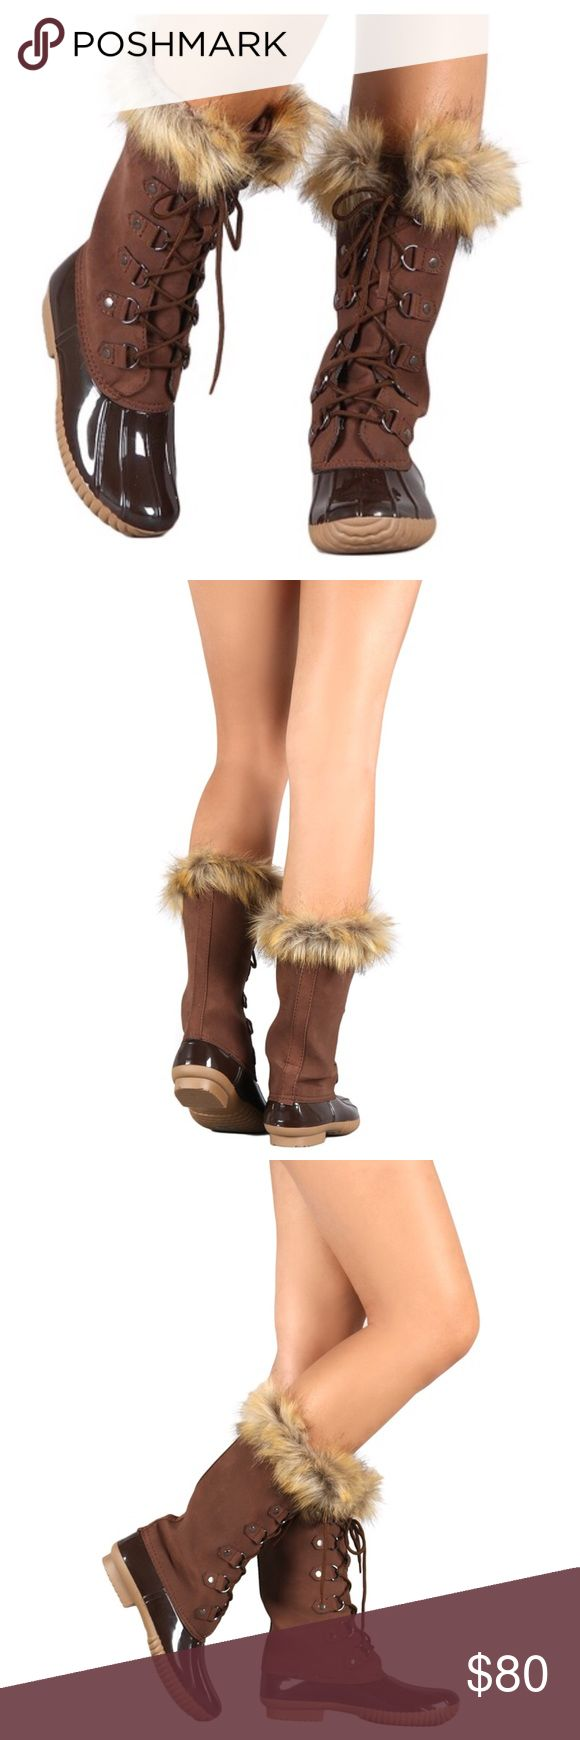 ✨HP✨ Arrives Soon- Fur Lace Up Duck Boots, Bootie Best In shoes and boots Host Pick! Fabulous brown fur lace up duck boots. So chic for fall/winter. Vegan fur. Grooves on sole. Beautiful navy with a tan contrast! Winter boots. Rain boots. Snow boots. Brand new. Price is firm unless bundled. тнαик уσυ  Shoes Winter & Rain Boots